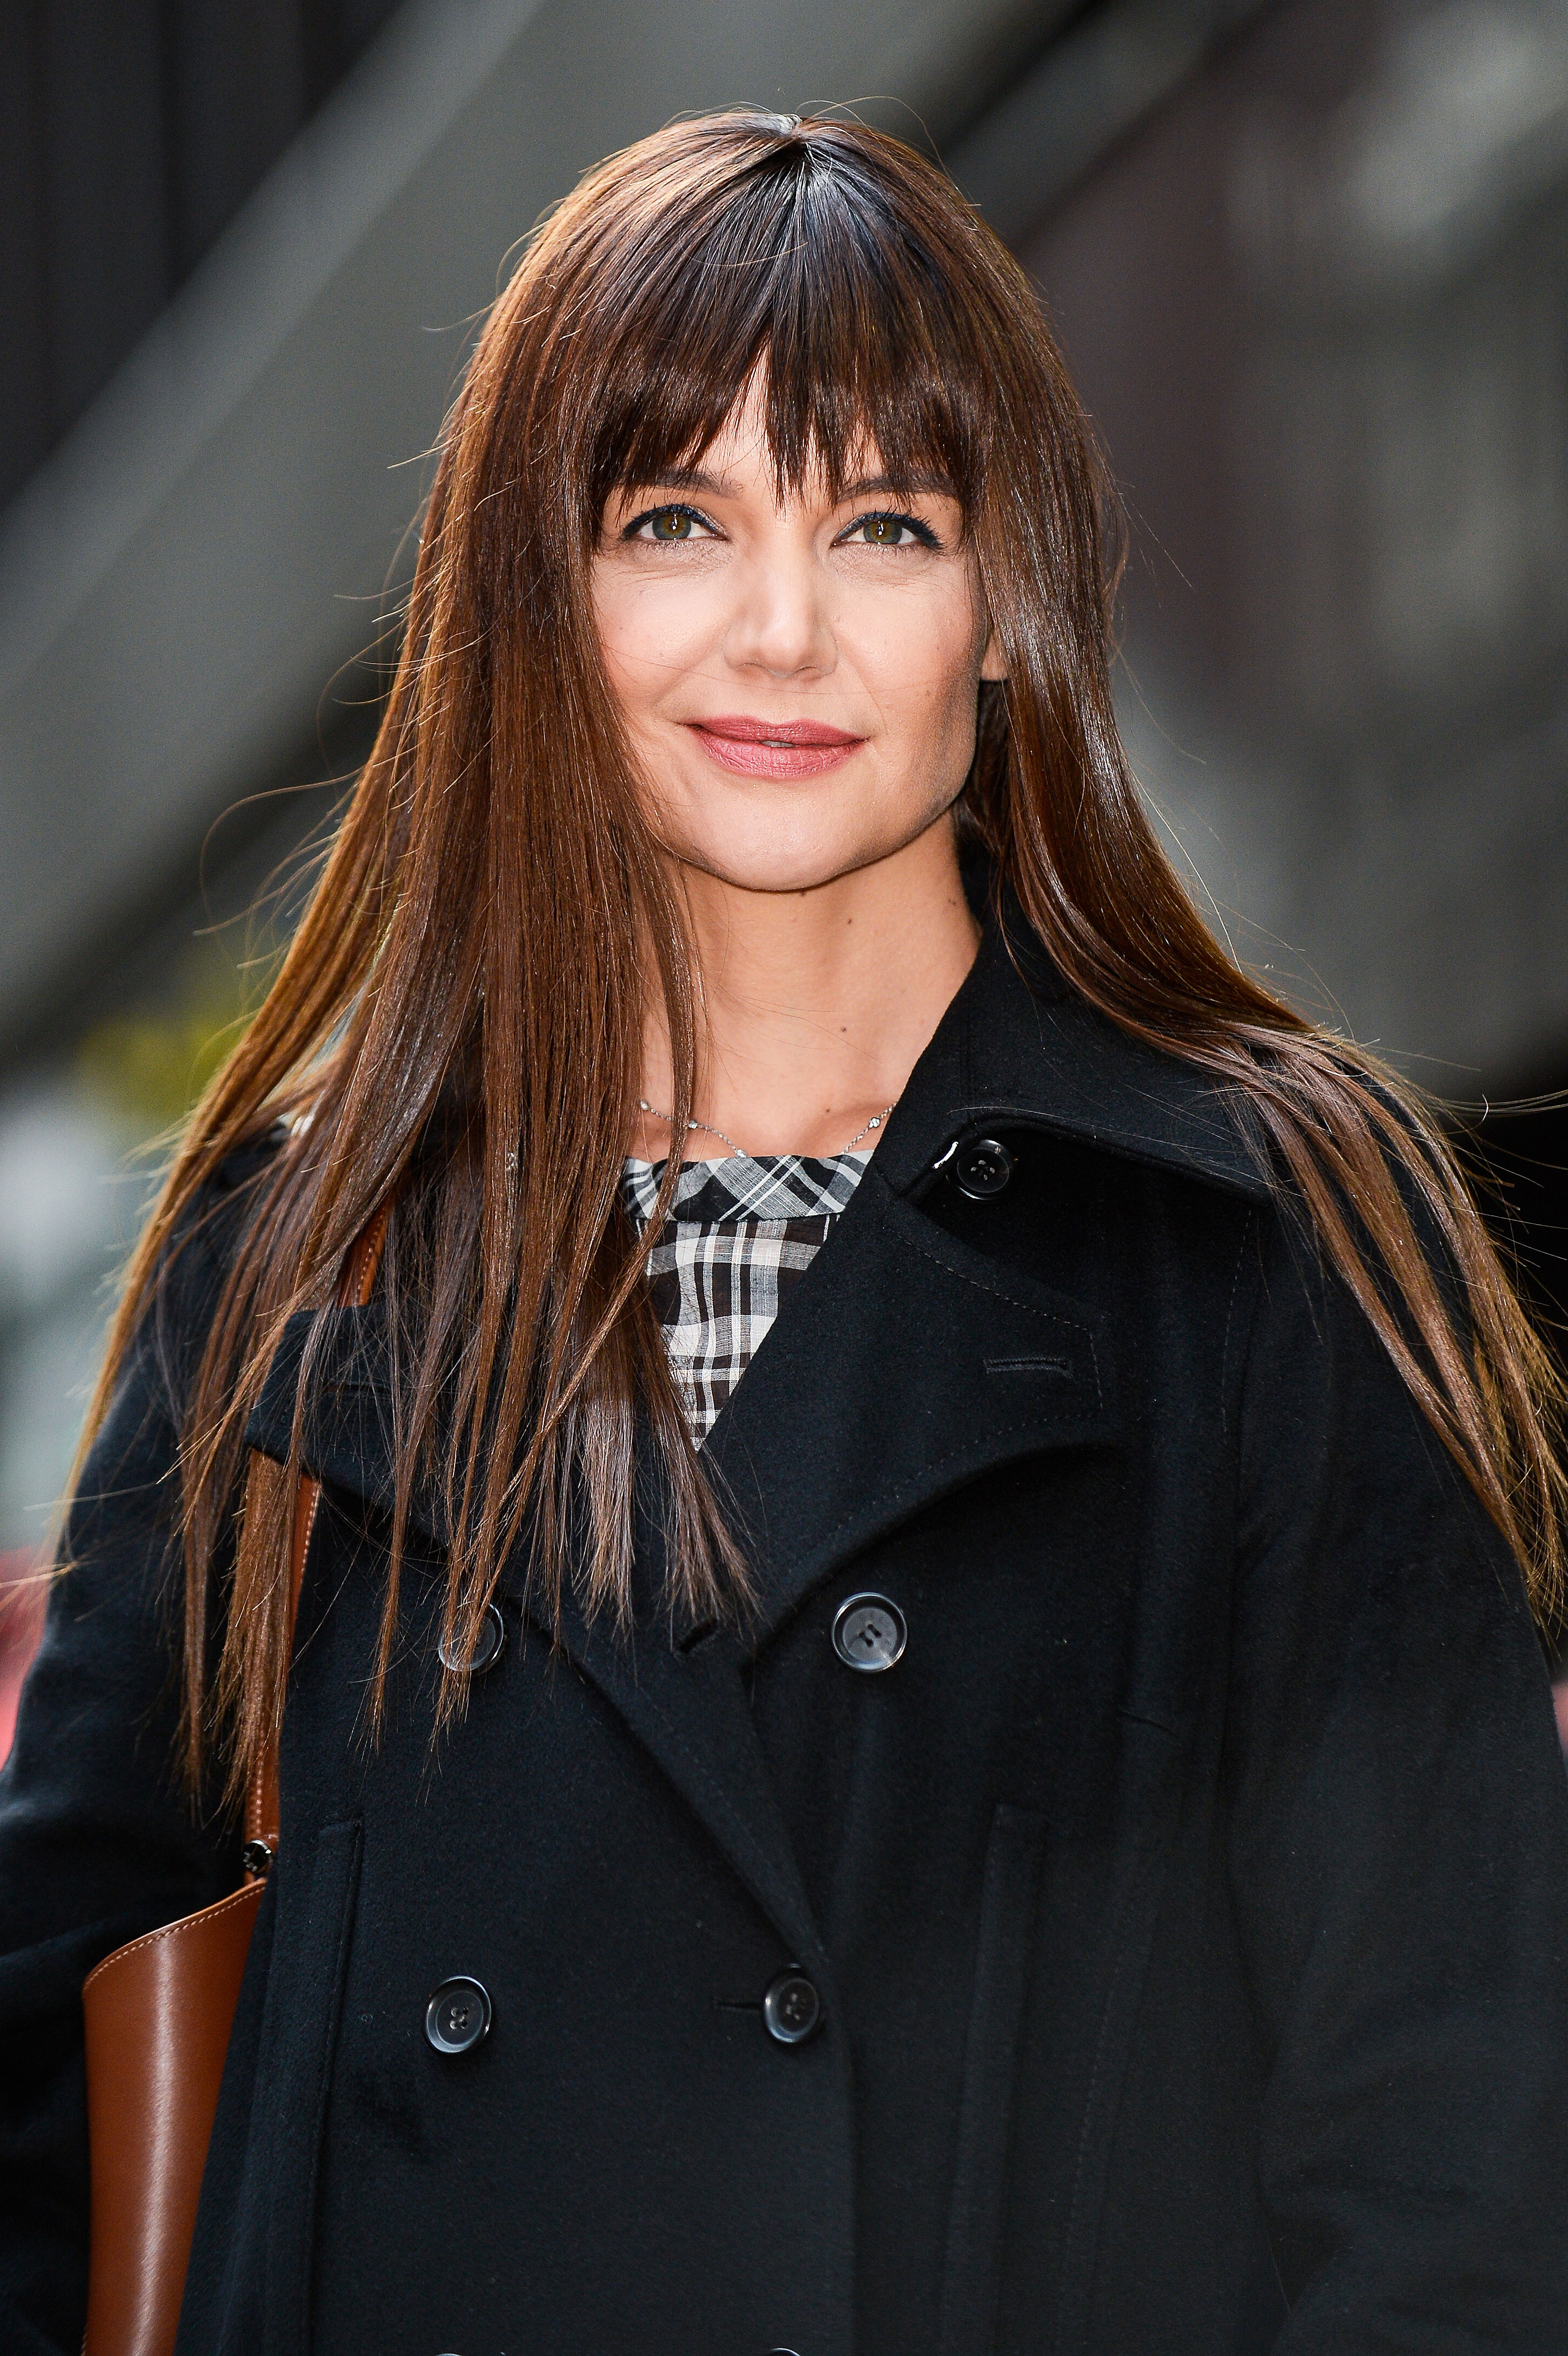 Katie holmes gets choked and rips her clothes off